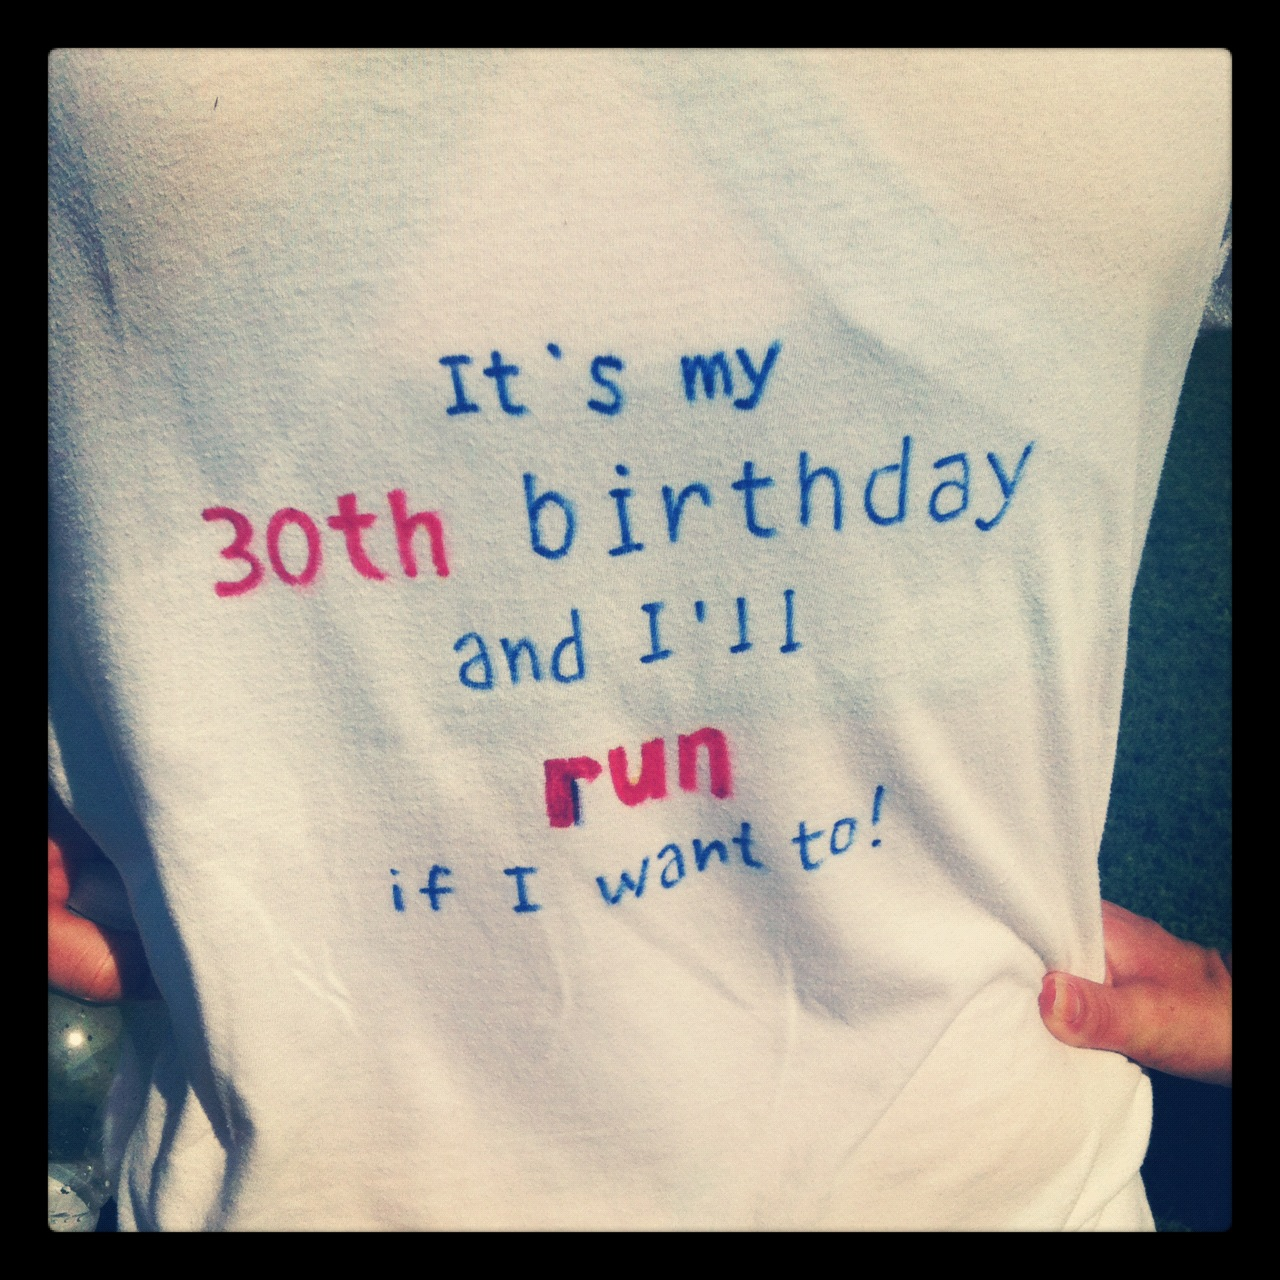 Thanks To The Back Of My Shirt I Got Quite A Very Happy Birthdays While Running